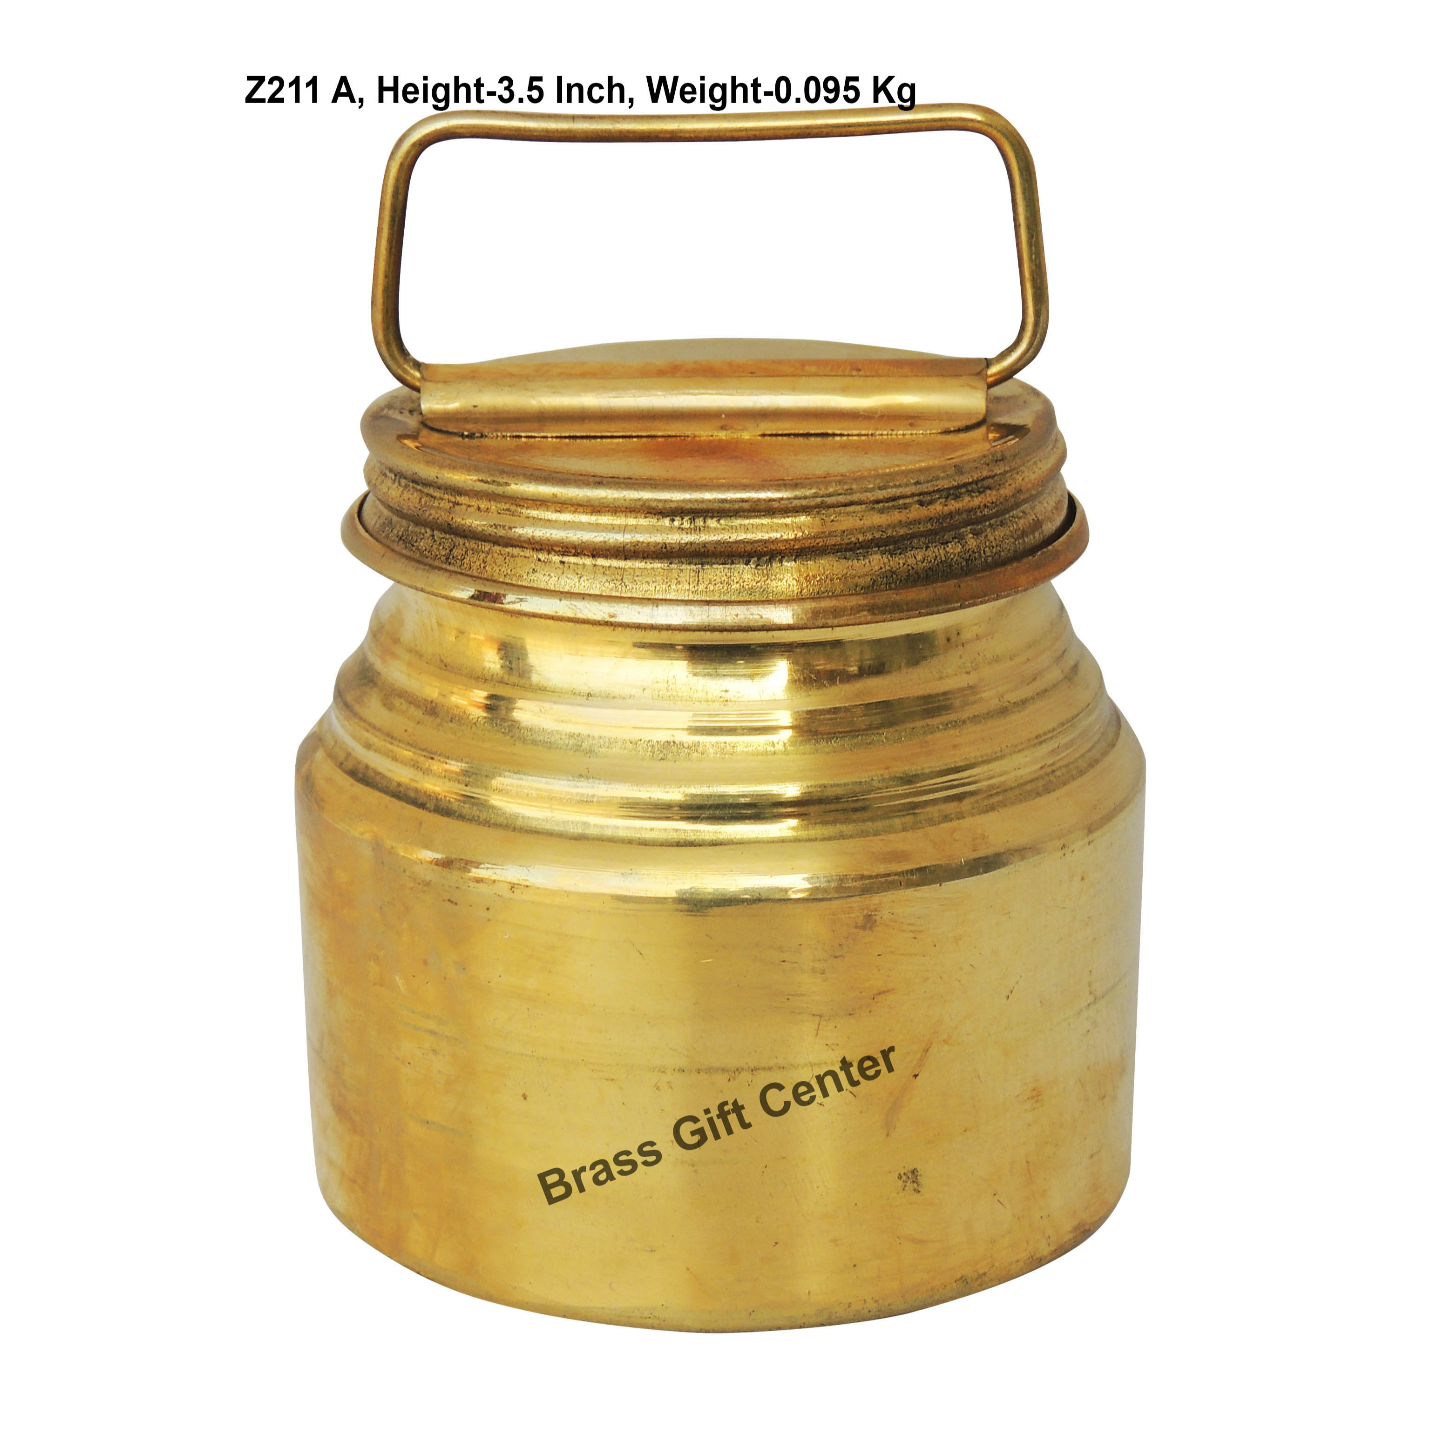 Brass Ganga JAL Pitcher Gangajali 200 ml - 2.7*2.7*3.5 Inch  (Z211 A)